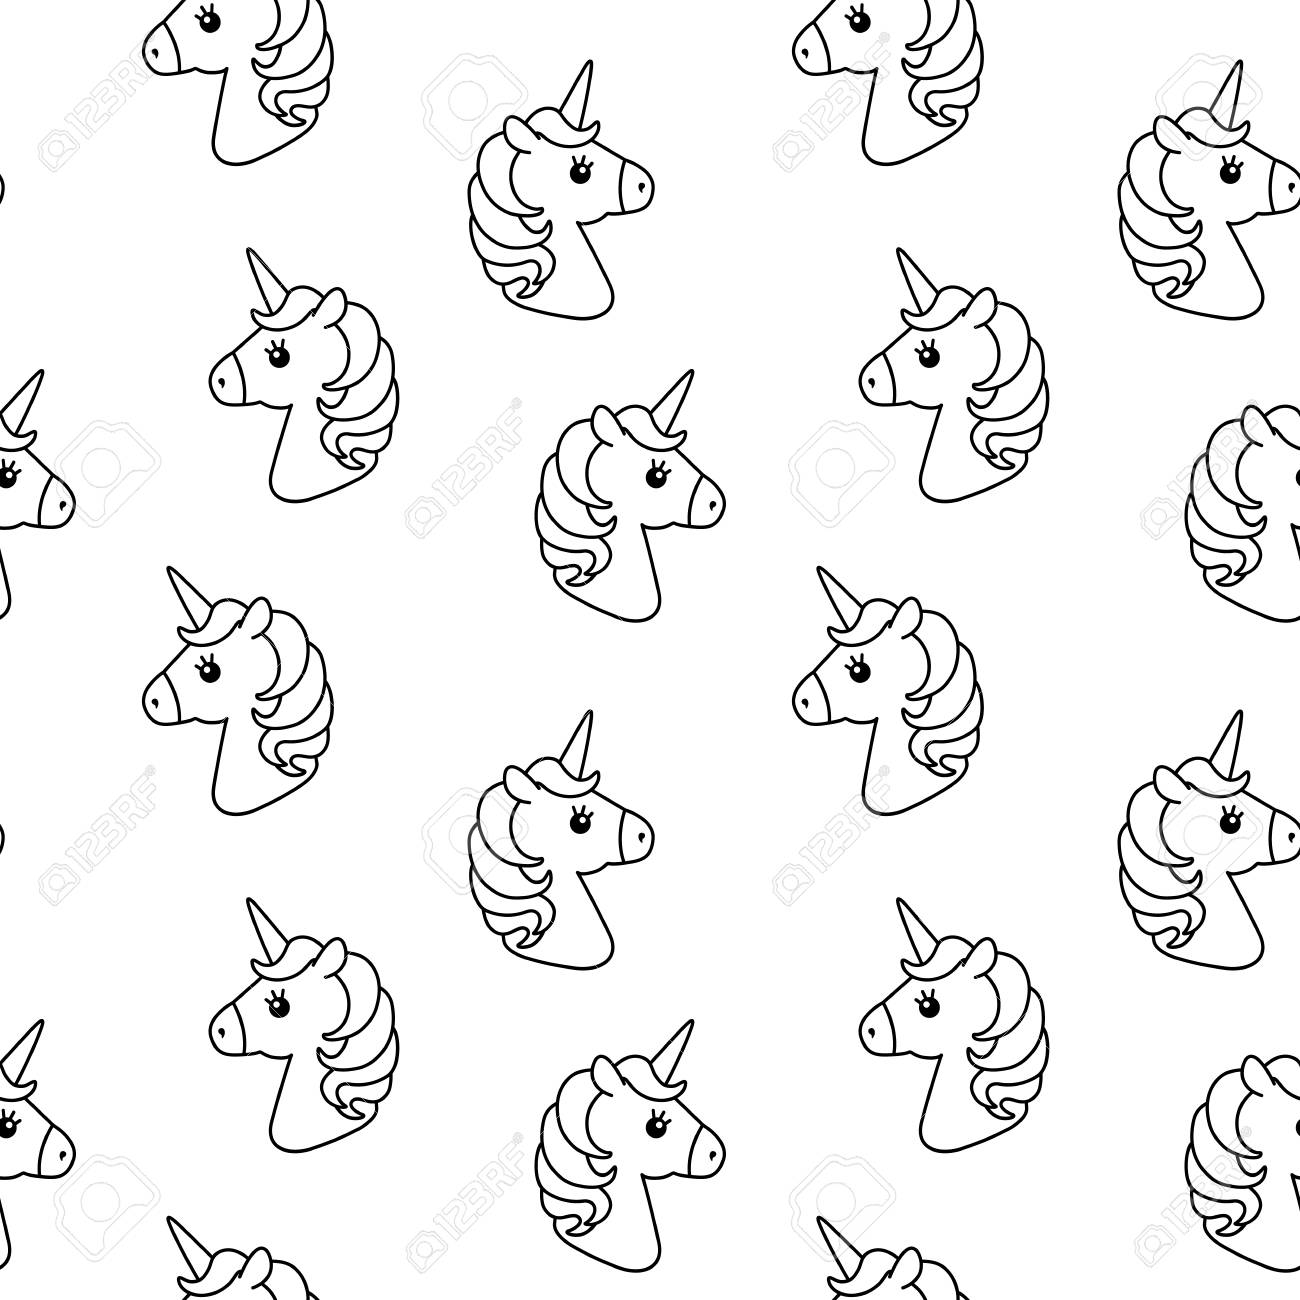 Unicorn Vector Seamless Pattern Horse Head Colored Book Black Stock Photo Picture And Royalty Free Image Image 88907323